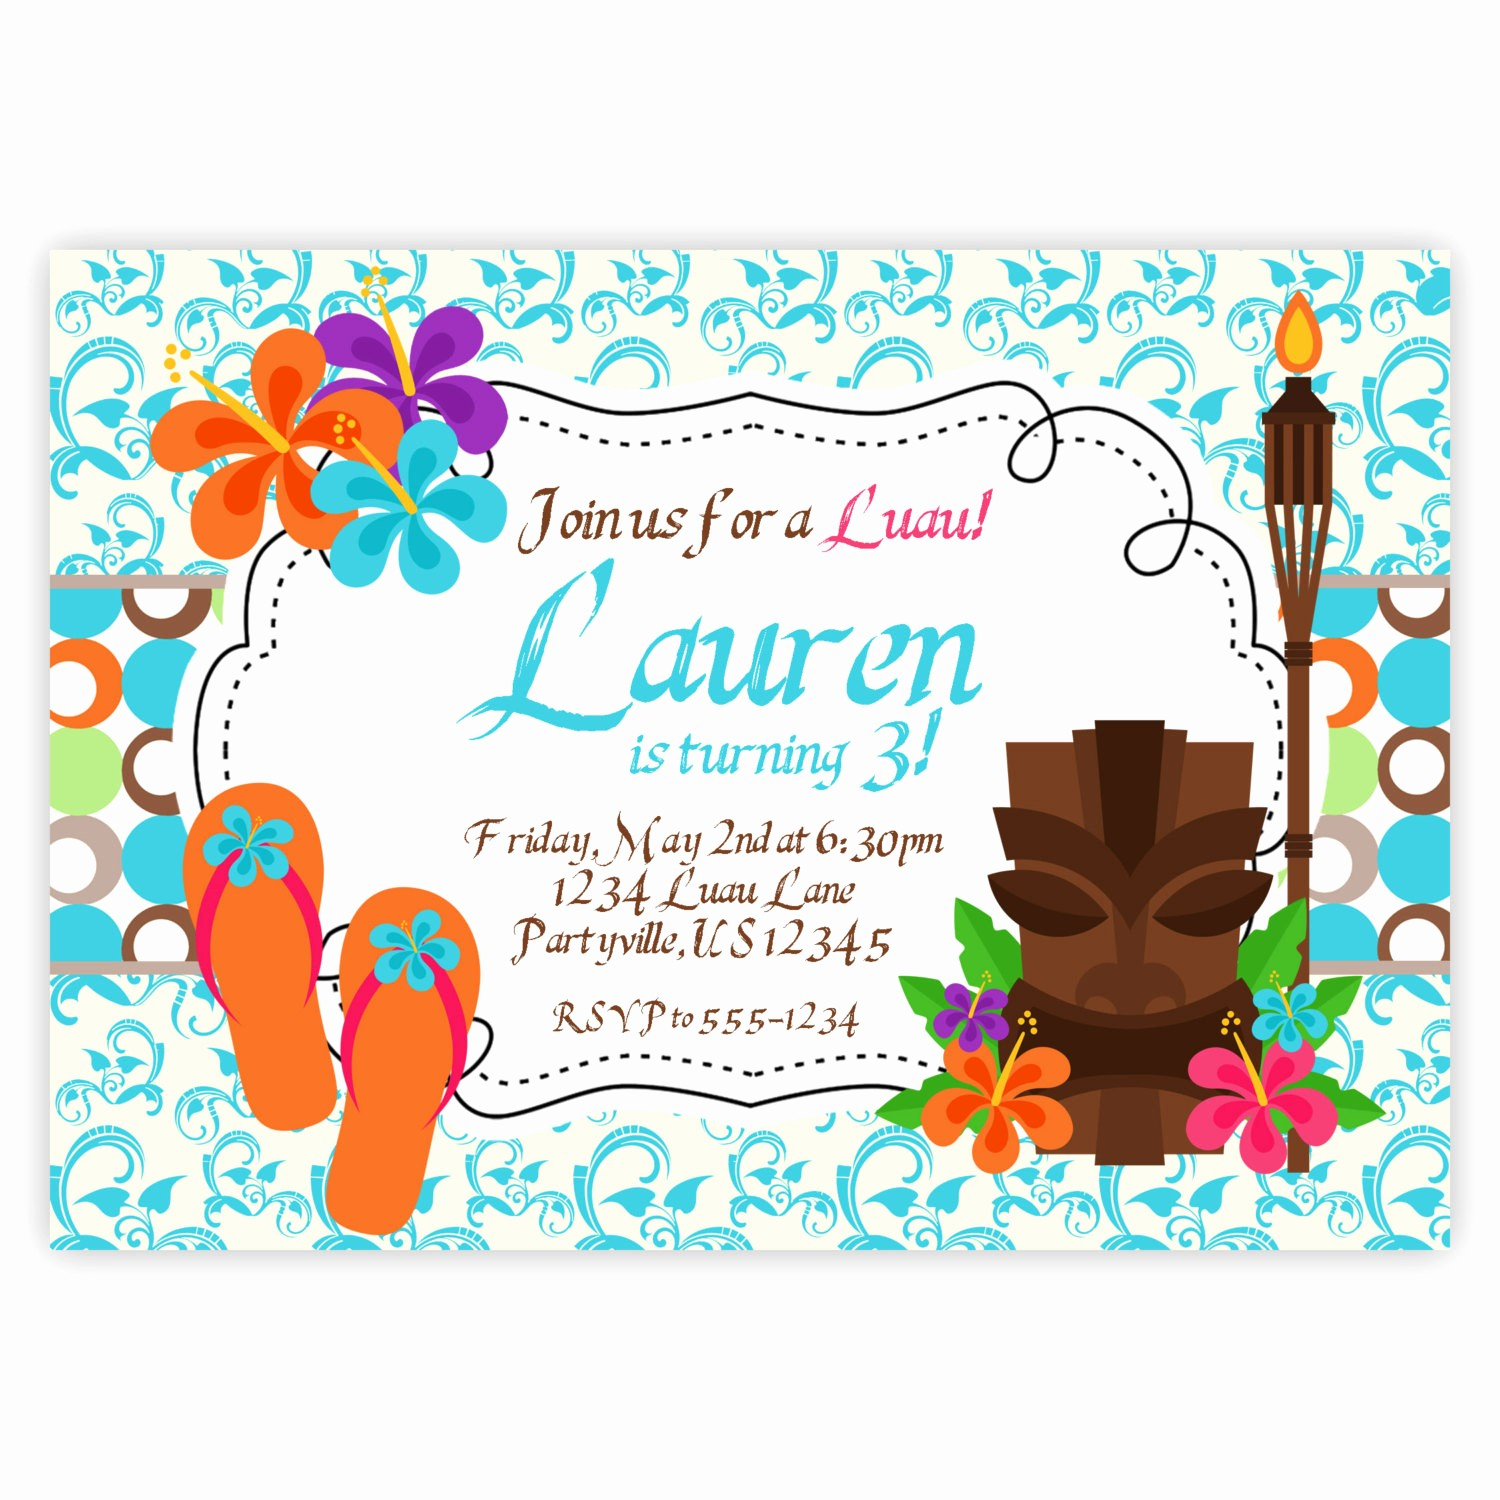 Luau Party Invitations Templates Free New 13 Best S Of Luau Party Invitation Blank Template